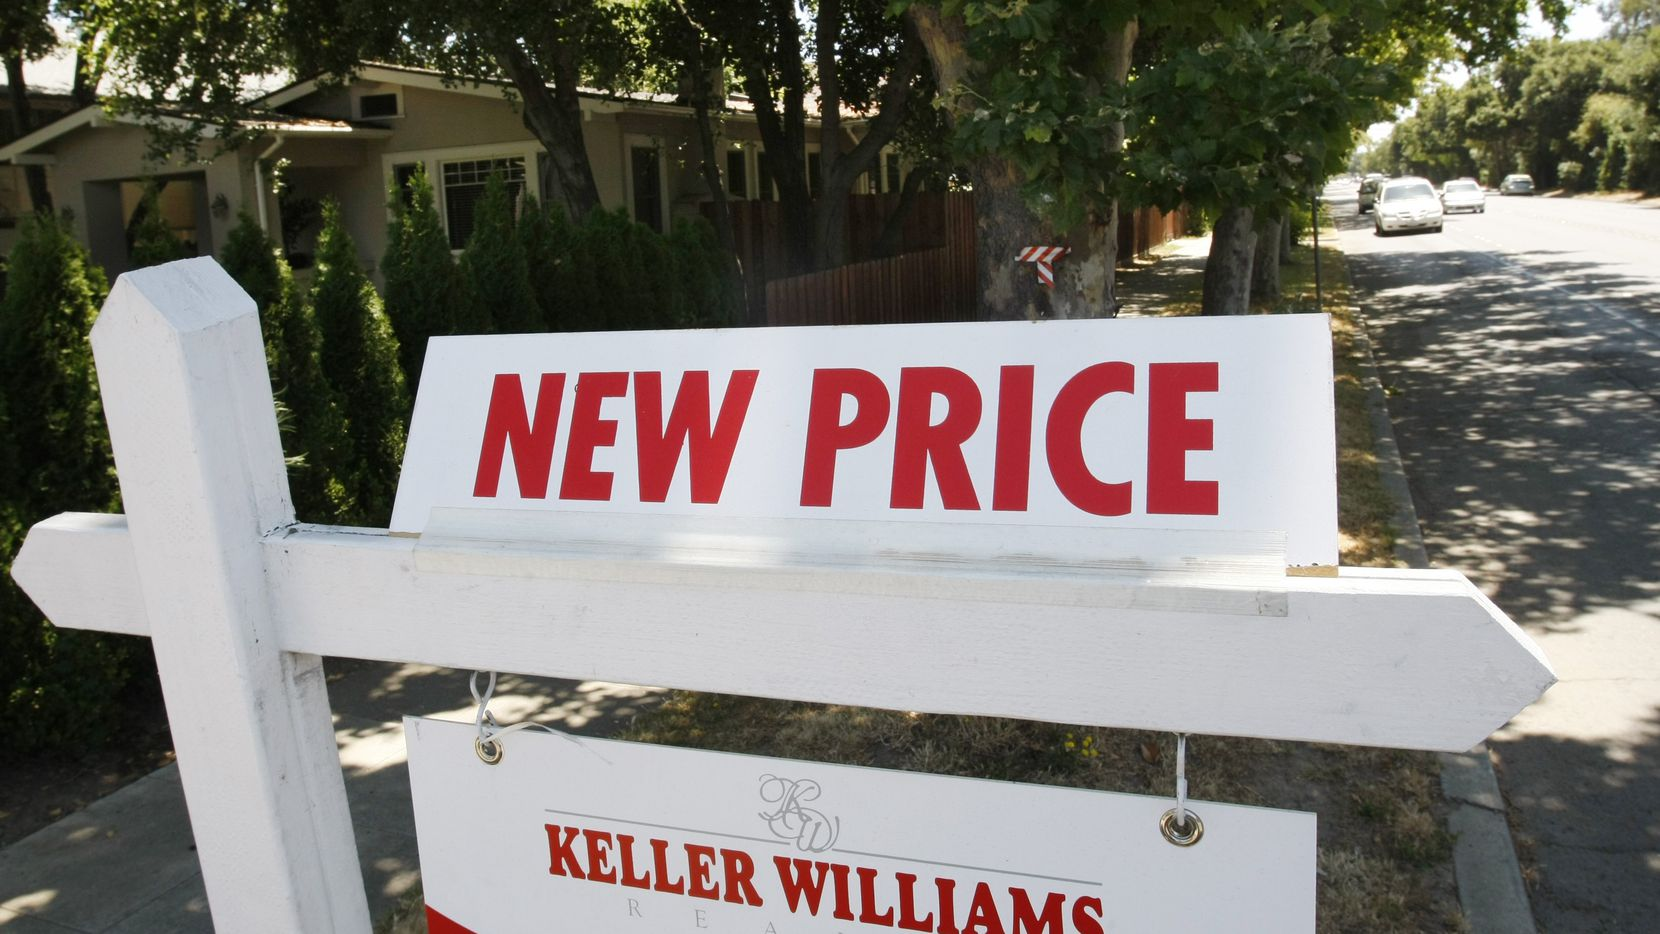 Dallas-area home prices were up only 3.8 percent from a year ago in the latest Case-Shiller report.